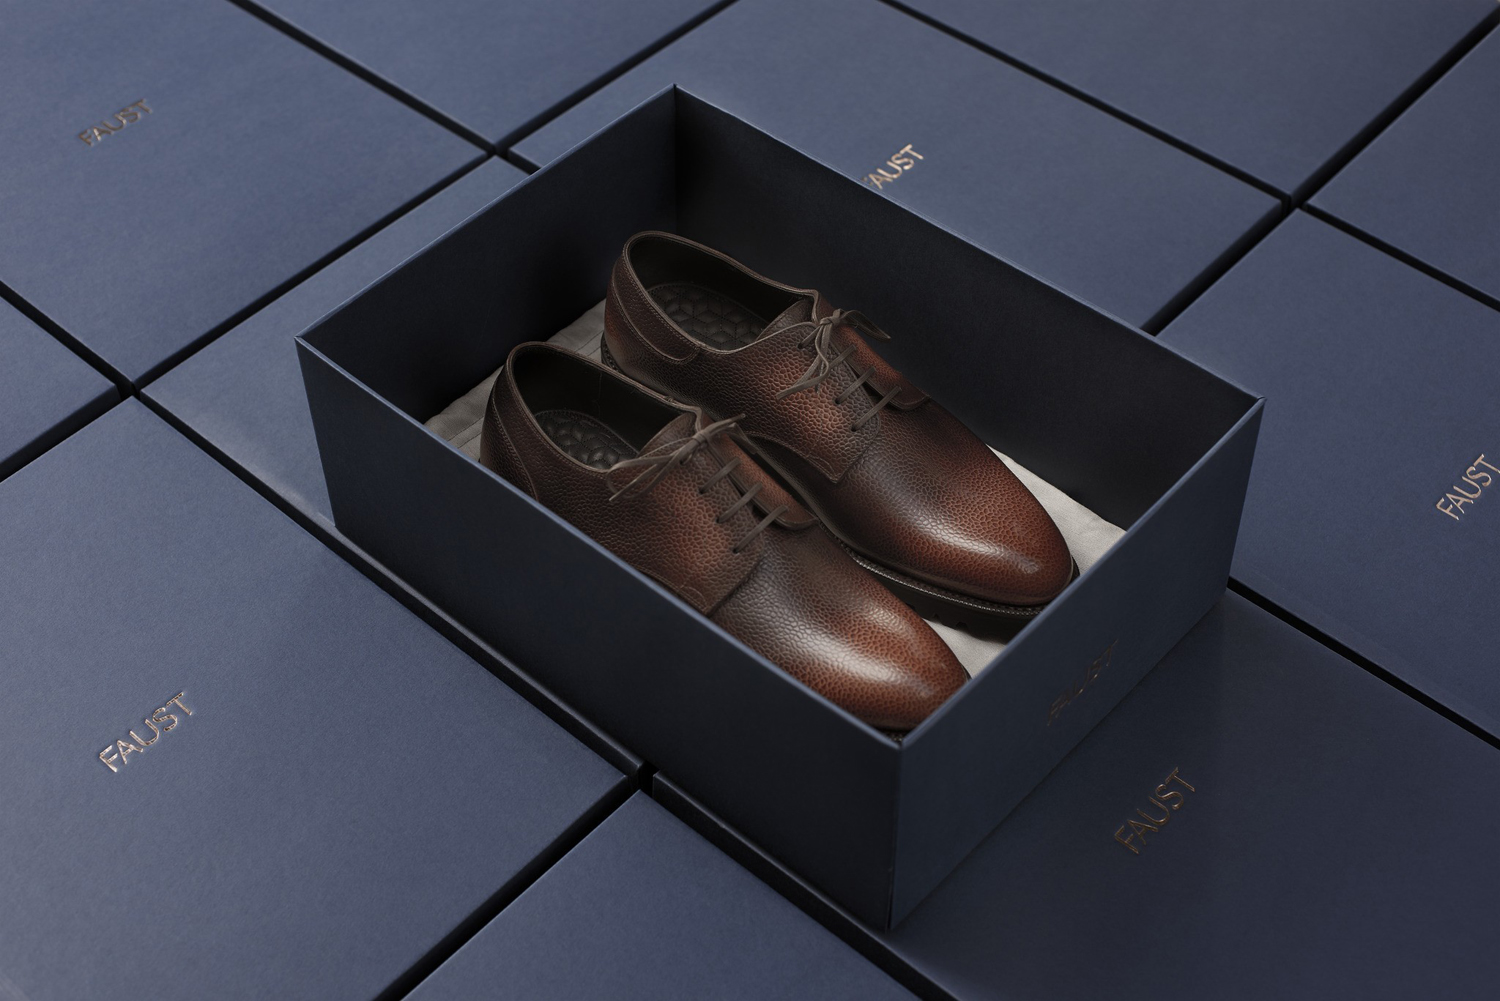 Brand identity and packaging design by Snøhetta for Oslo-based high-end shoemaker Faust